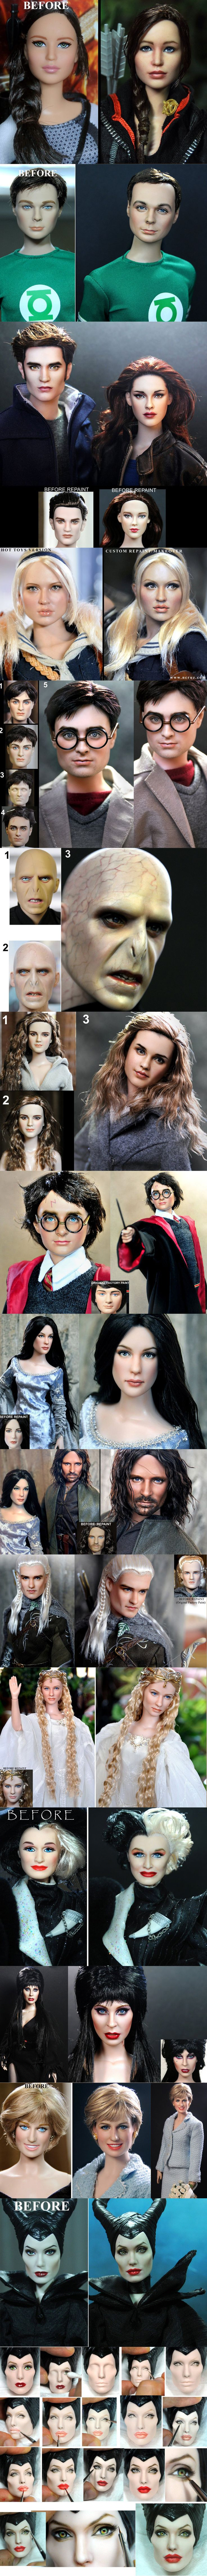 Makeup artist repaint celebrity based dolls to make them look more realistic - Imgur